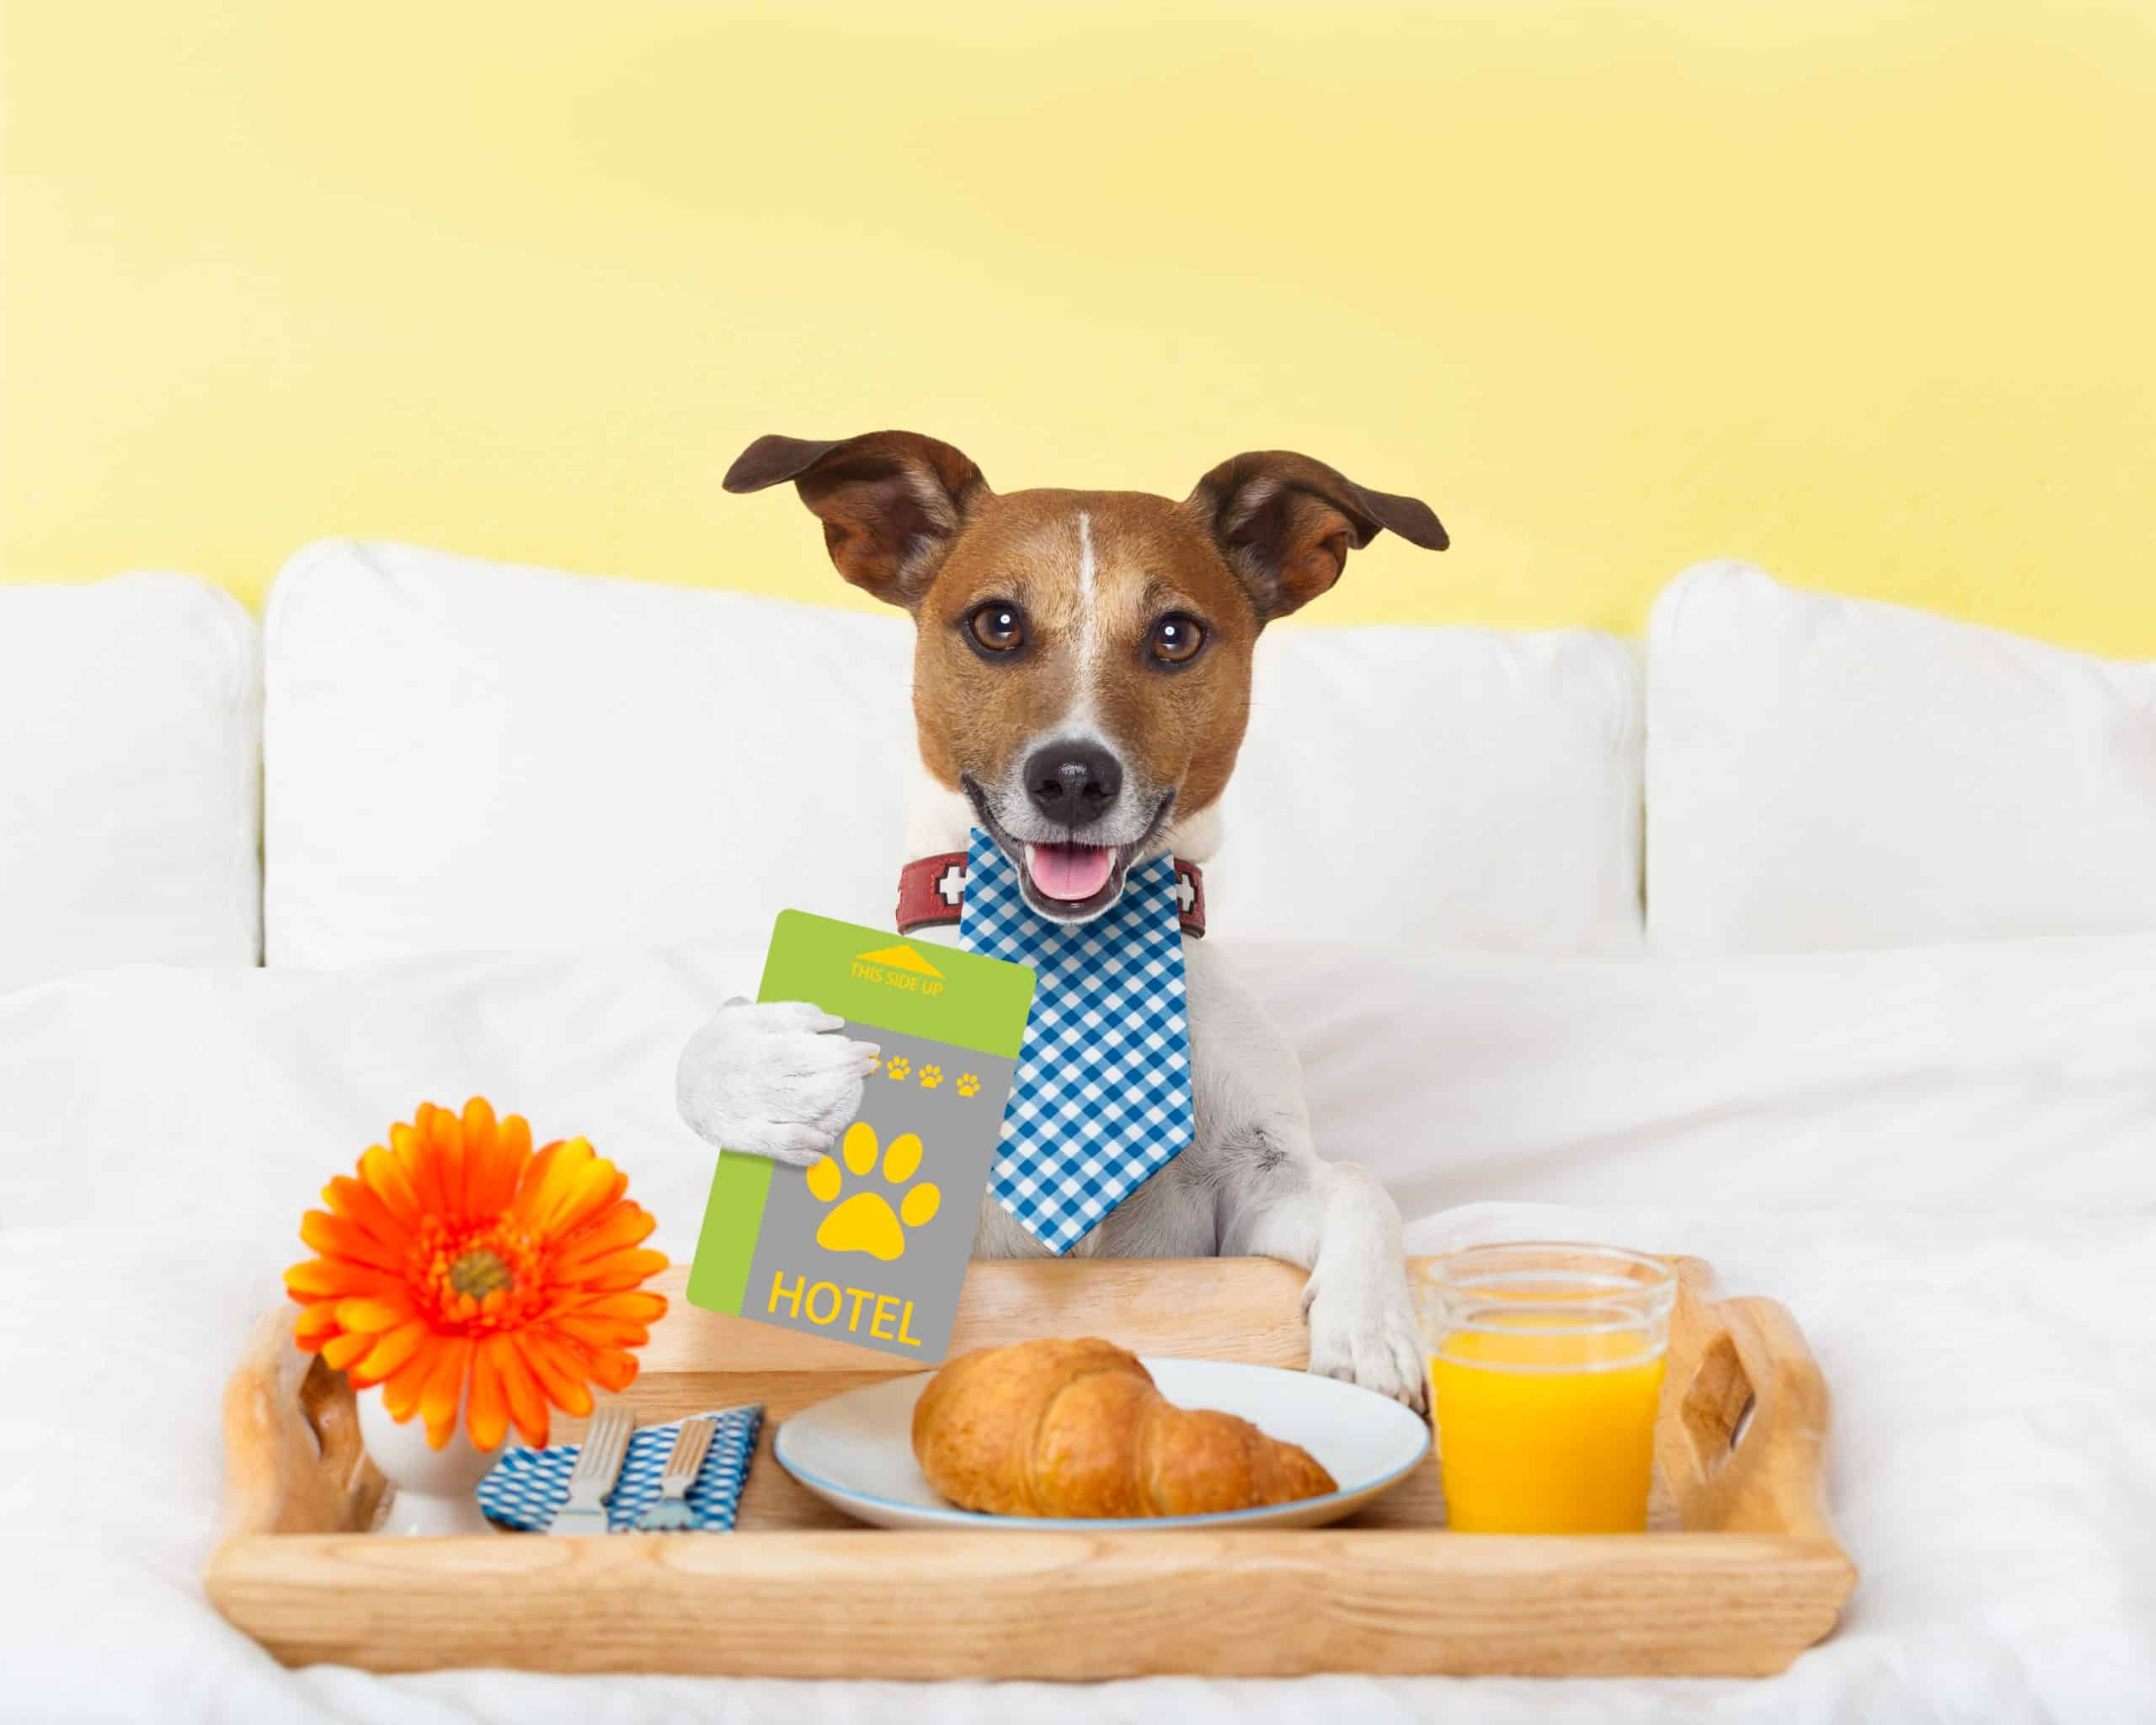 Photo illustration of dog at hotel. Pamper your pup with luxury hotel treats and services for the ultimate dog-friendly holiday.